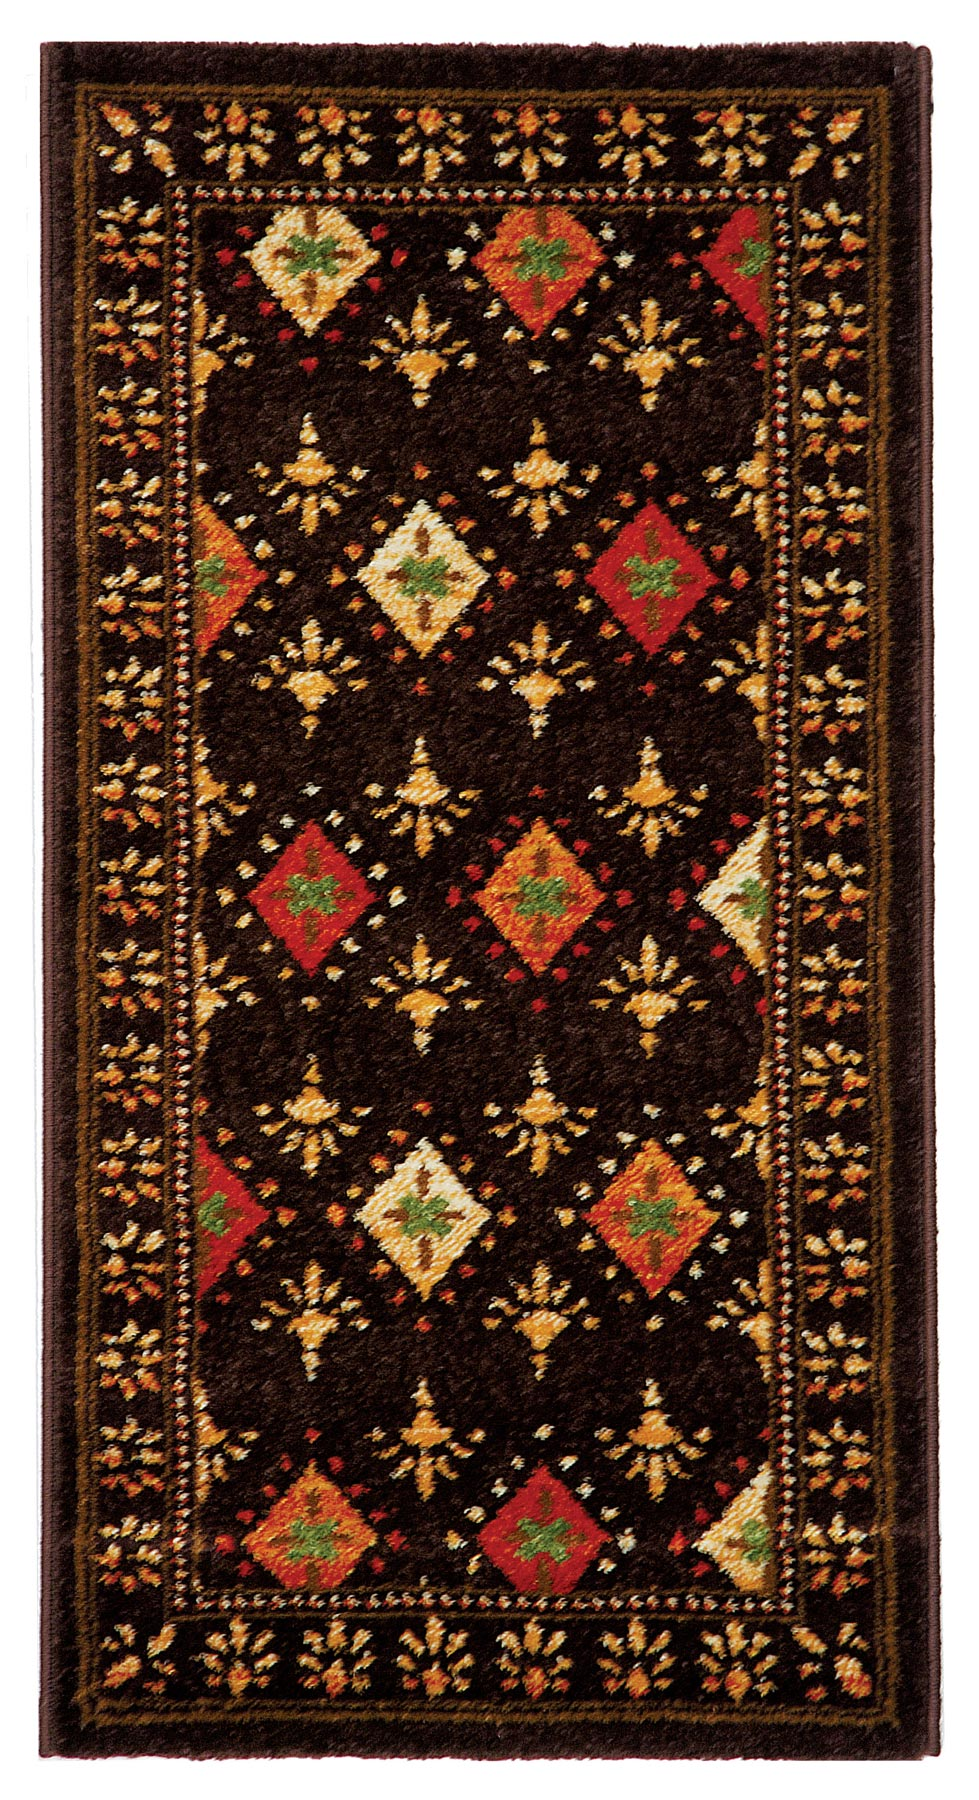 Rug Prl2709b Porcello Area Rugs By Safavieh